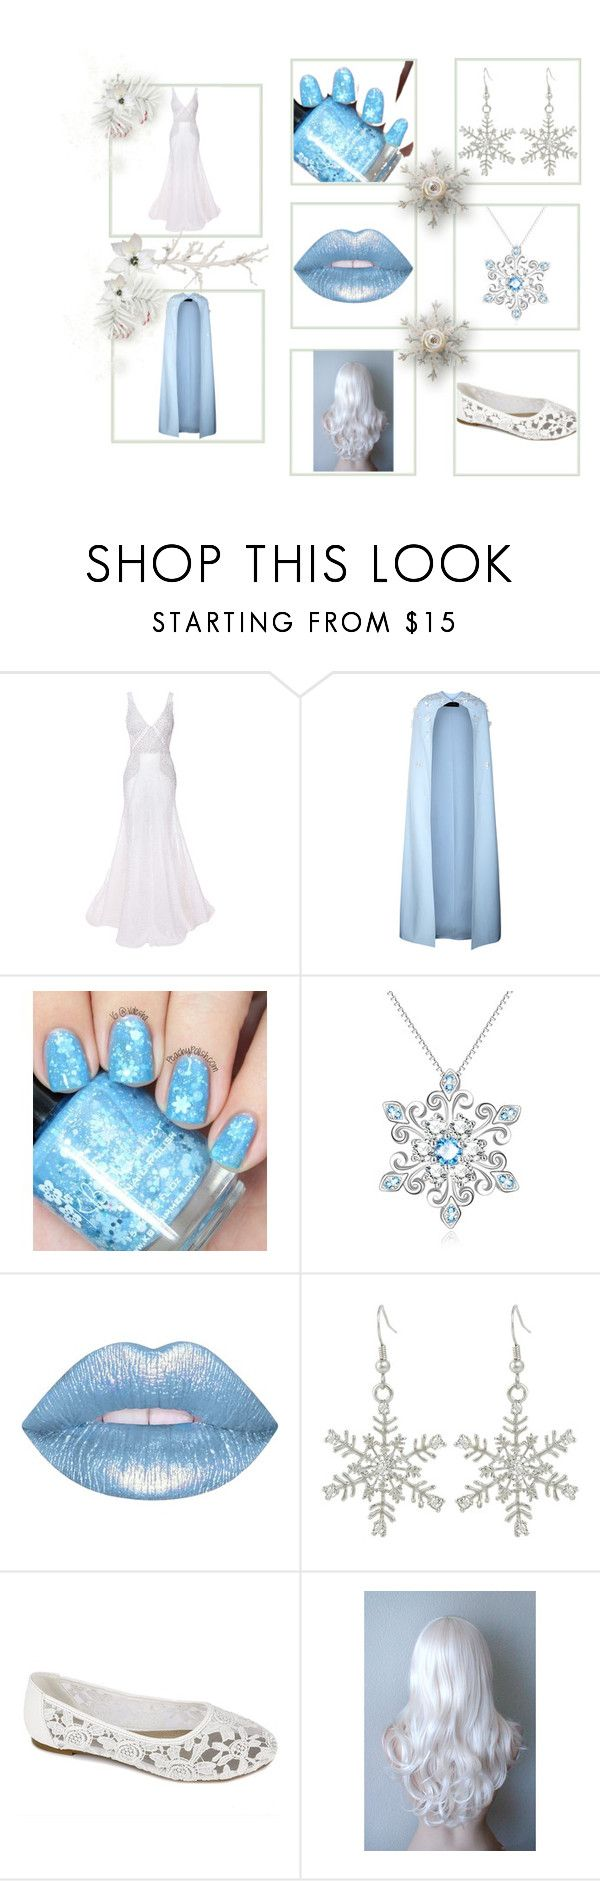 """""""Snow Queen"""" by tova-nighthawk on Polyvore featuring Parlor, Safiyaa and Lime Crime"""